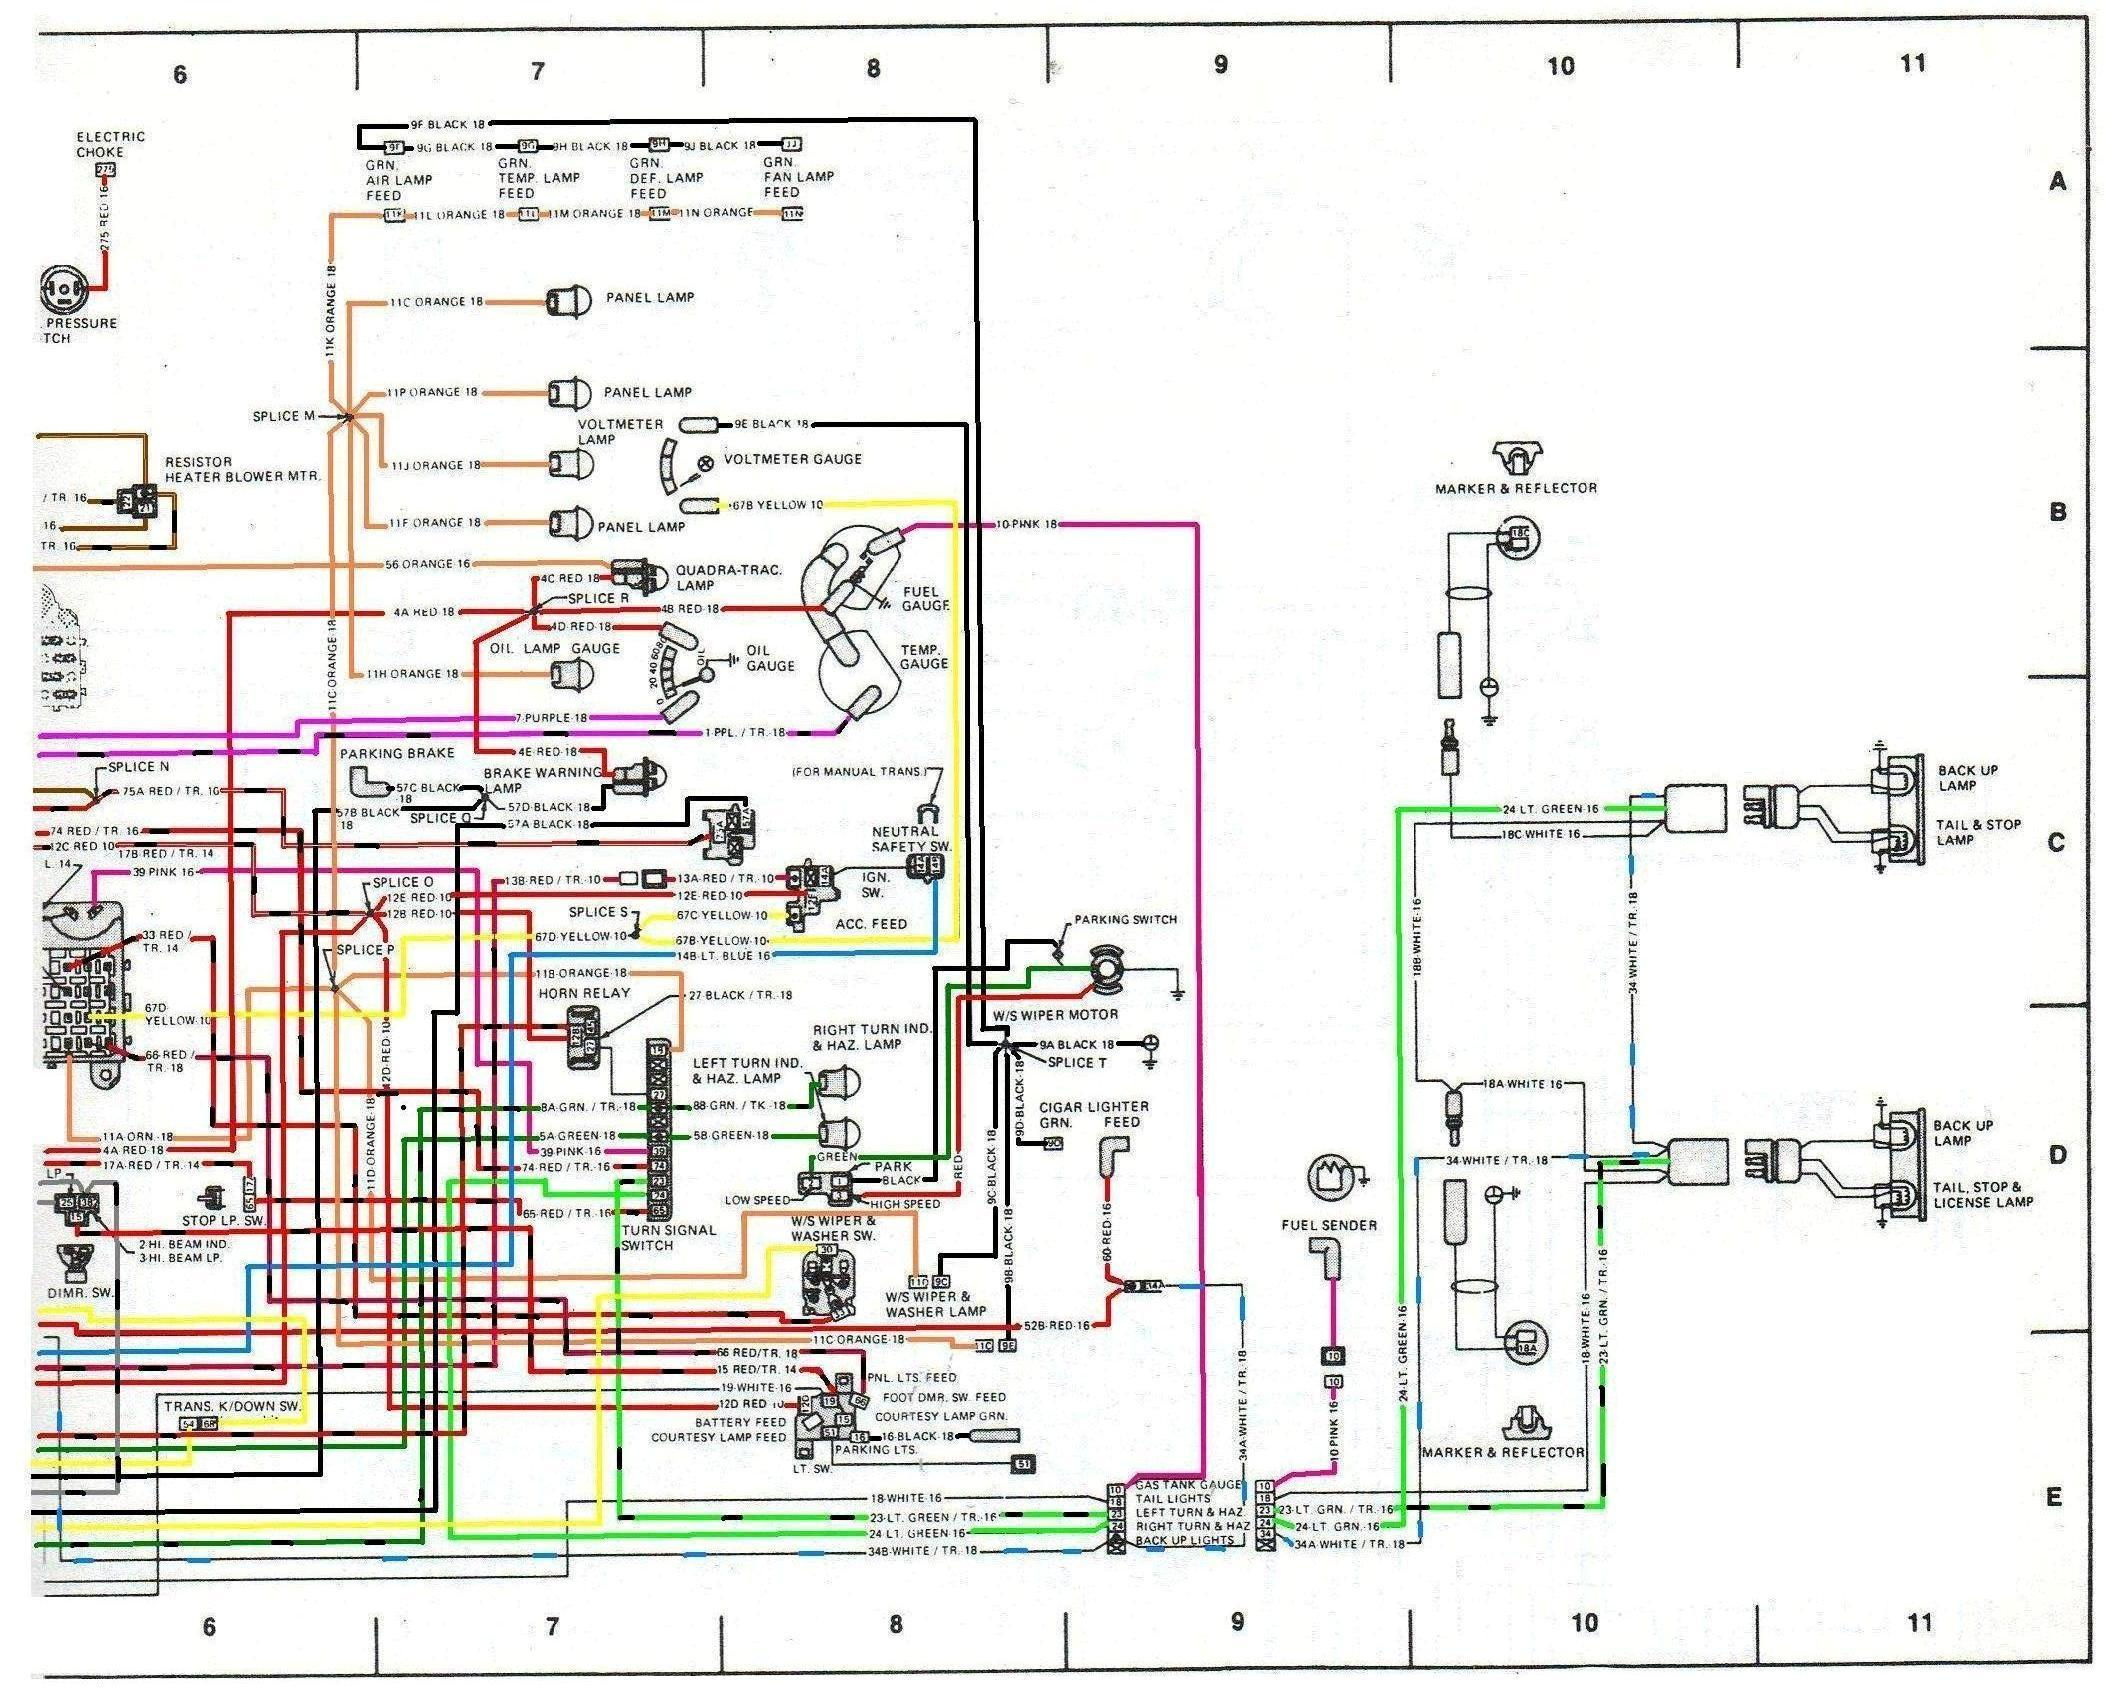 1979 jeep cj5 wiring diagram msd 6al 6420 engine i need a good copy of the for